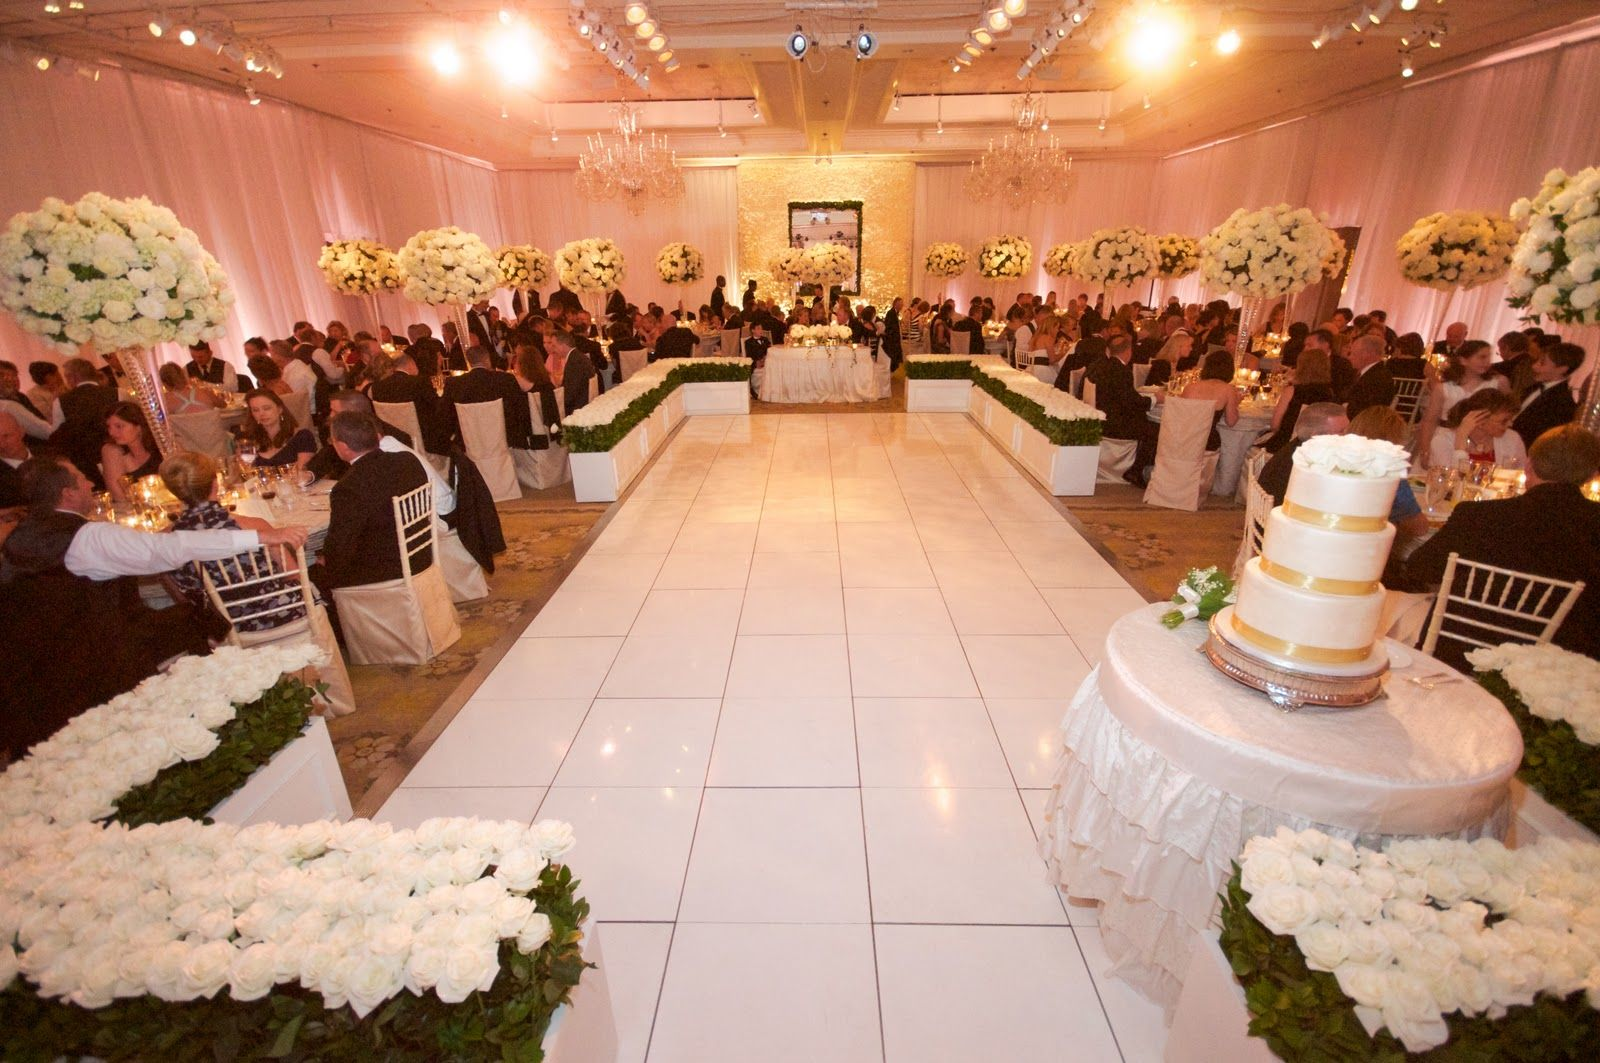 Ceremony Reception In The Same Room Weddings Style And Decor Wedding Forums Weddingwire Ideas Pinterest